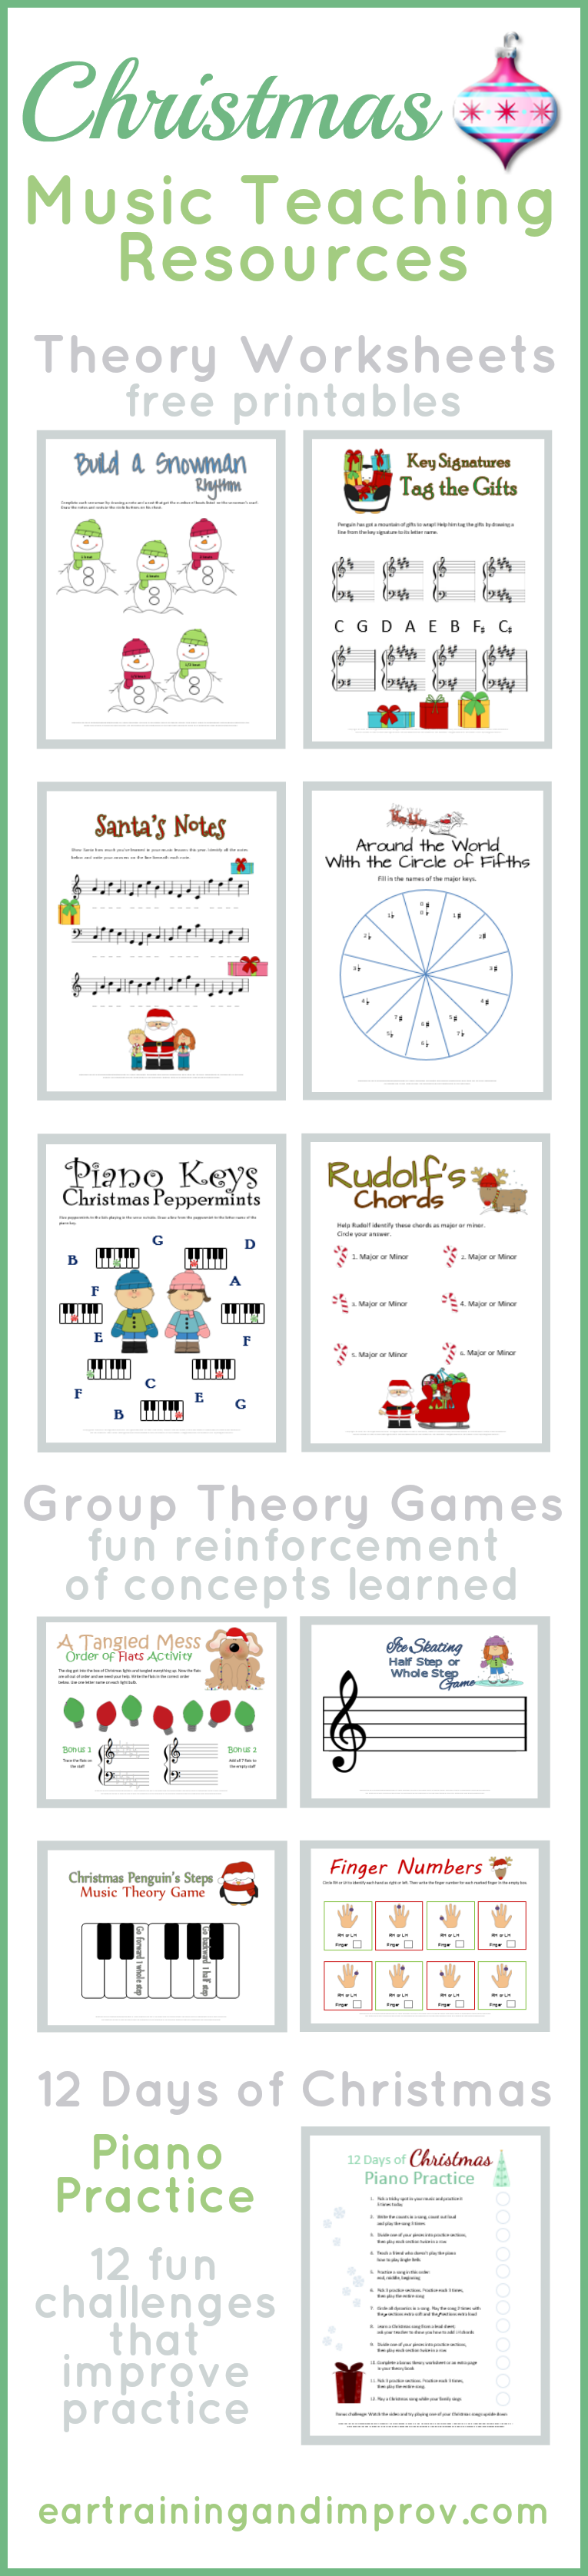 christmas music theory worksheets 20 free printables. Black Bedroom Furniture Sets. Home Design Ideas